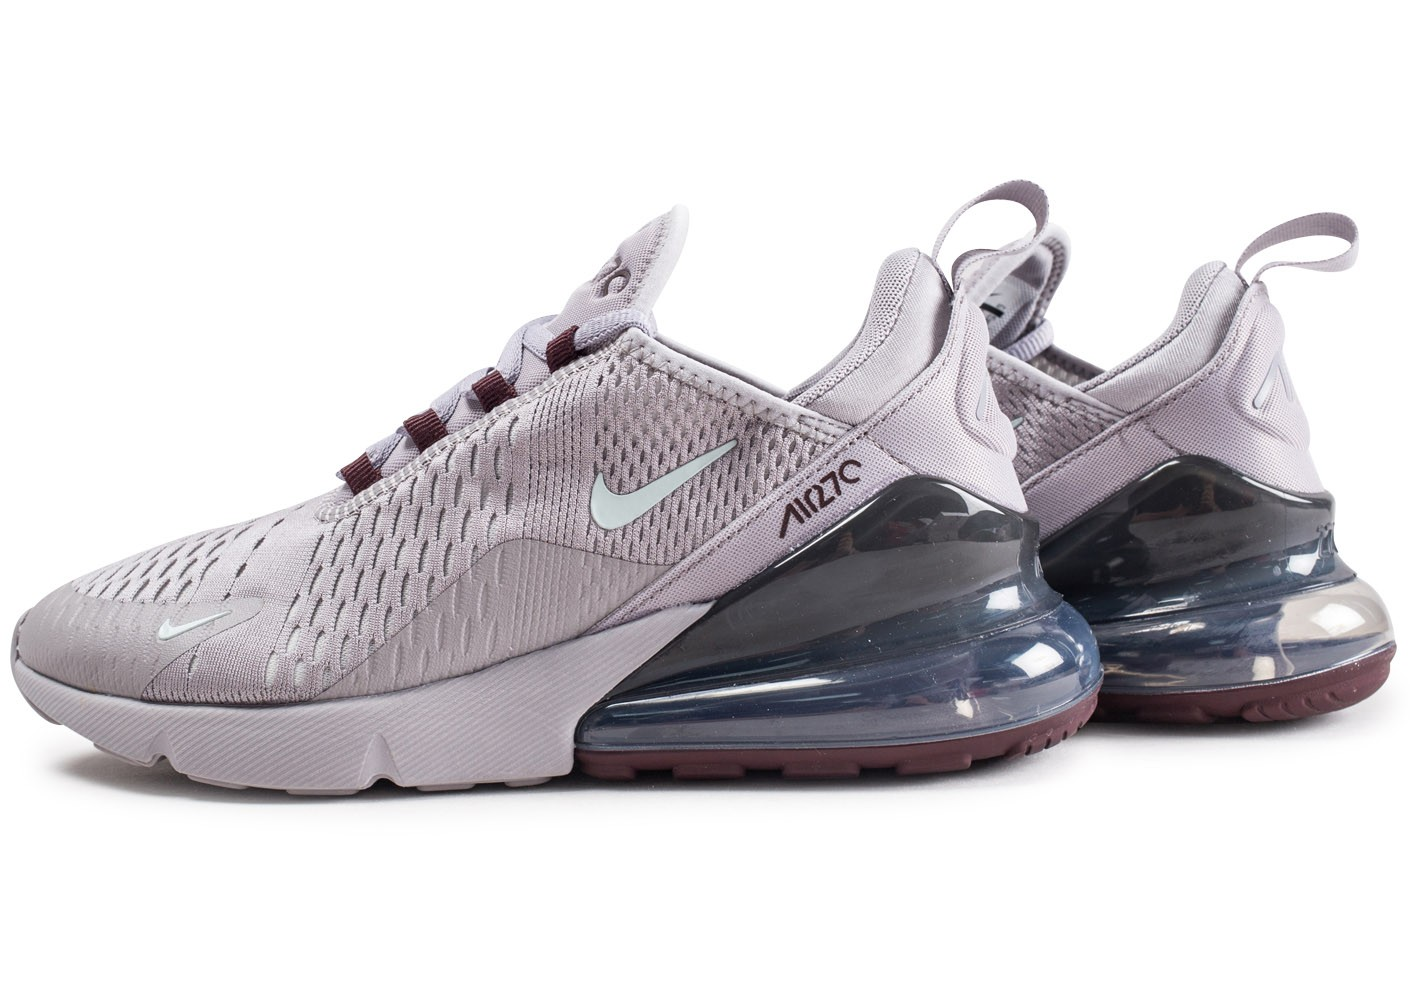 photos officielles 8b2a6 45957 Nike Air Max 270 grise - Chaussures Baskets homme - Chausport